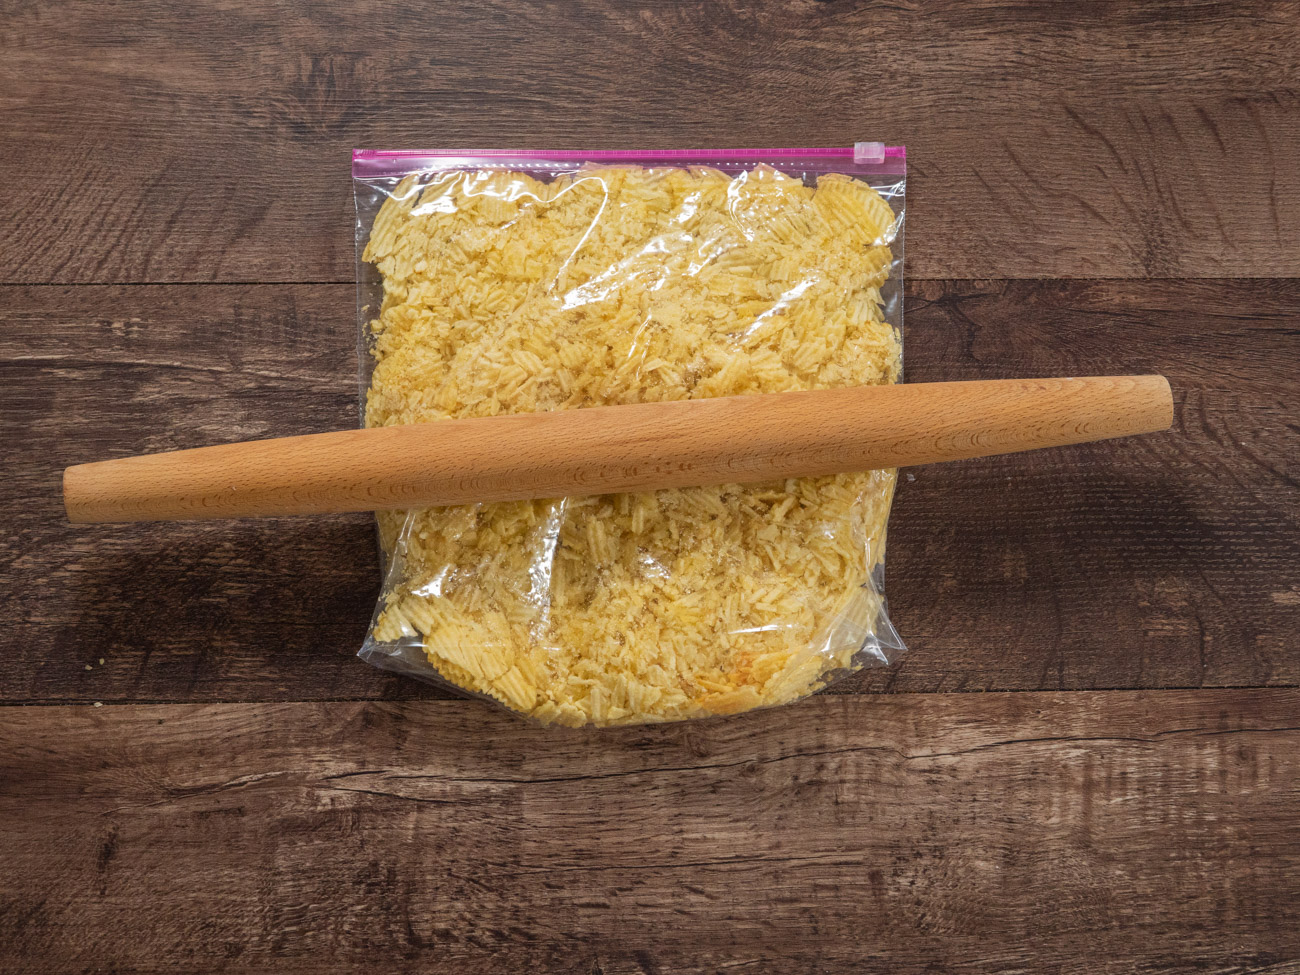 Grease a 9x9 pan. Crush the potato chips with a rolling pin and set aside.